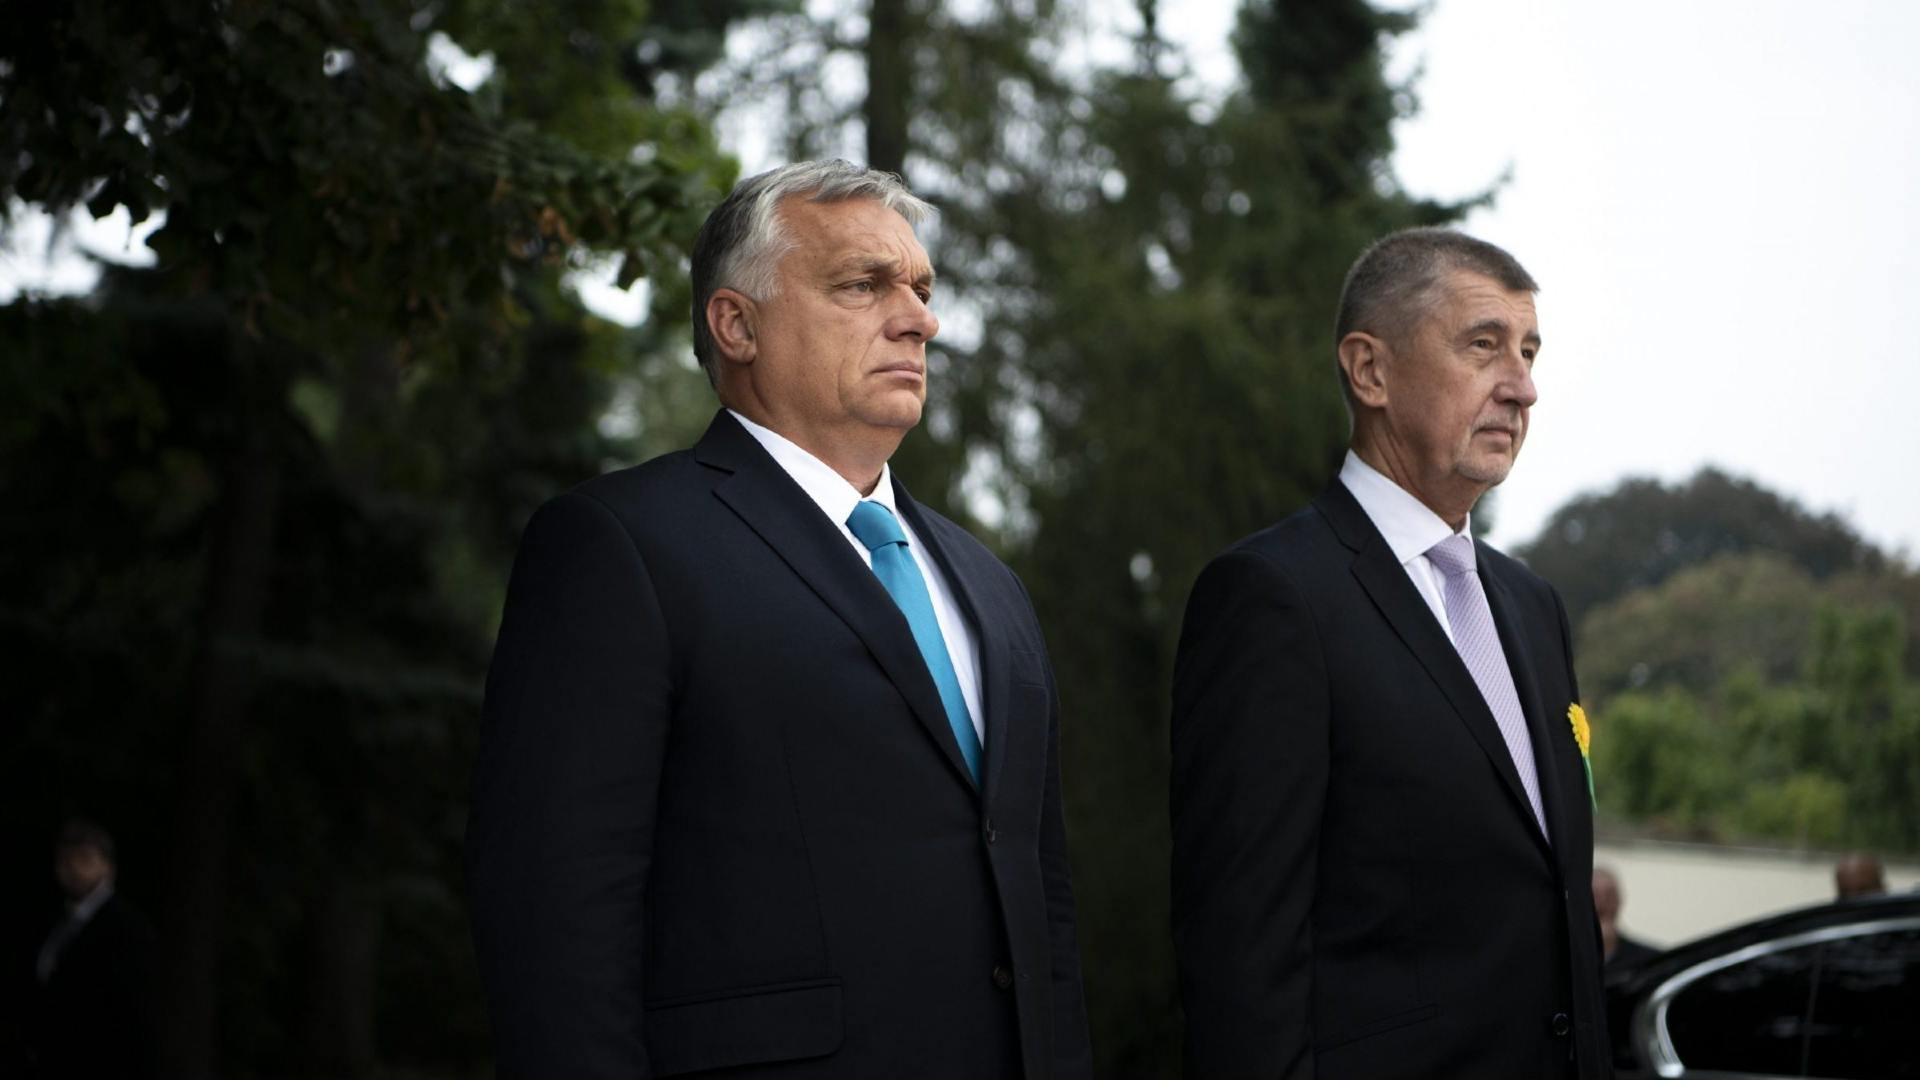 Prime Minister Viktor Orban and Czech Prime Minister Andrej Babis hold a press conference at the Ústí nad Labem in northern Bohemia on September 29, 2021. Photograph: MTI/Prime Minister's Press Office/Benko Vivien Cher